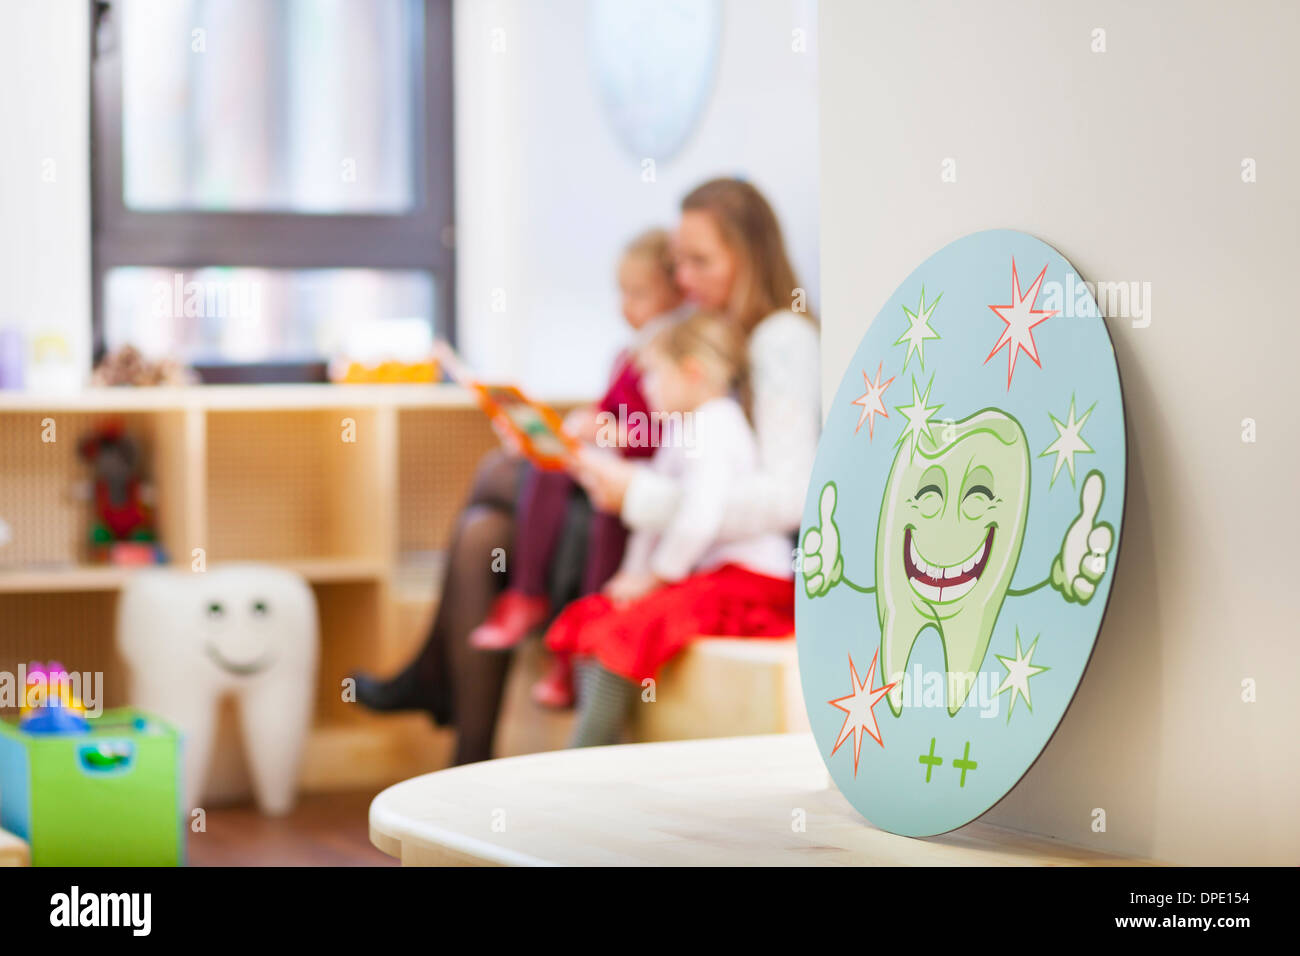 Family in dentists waiting room, picture of tooth in foreground - Stock Image